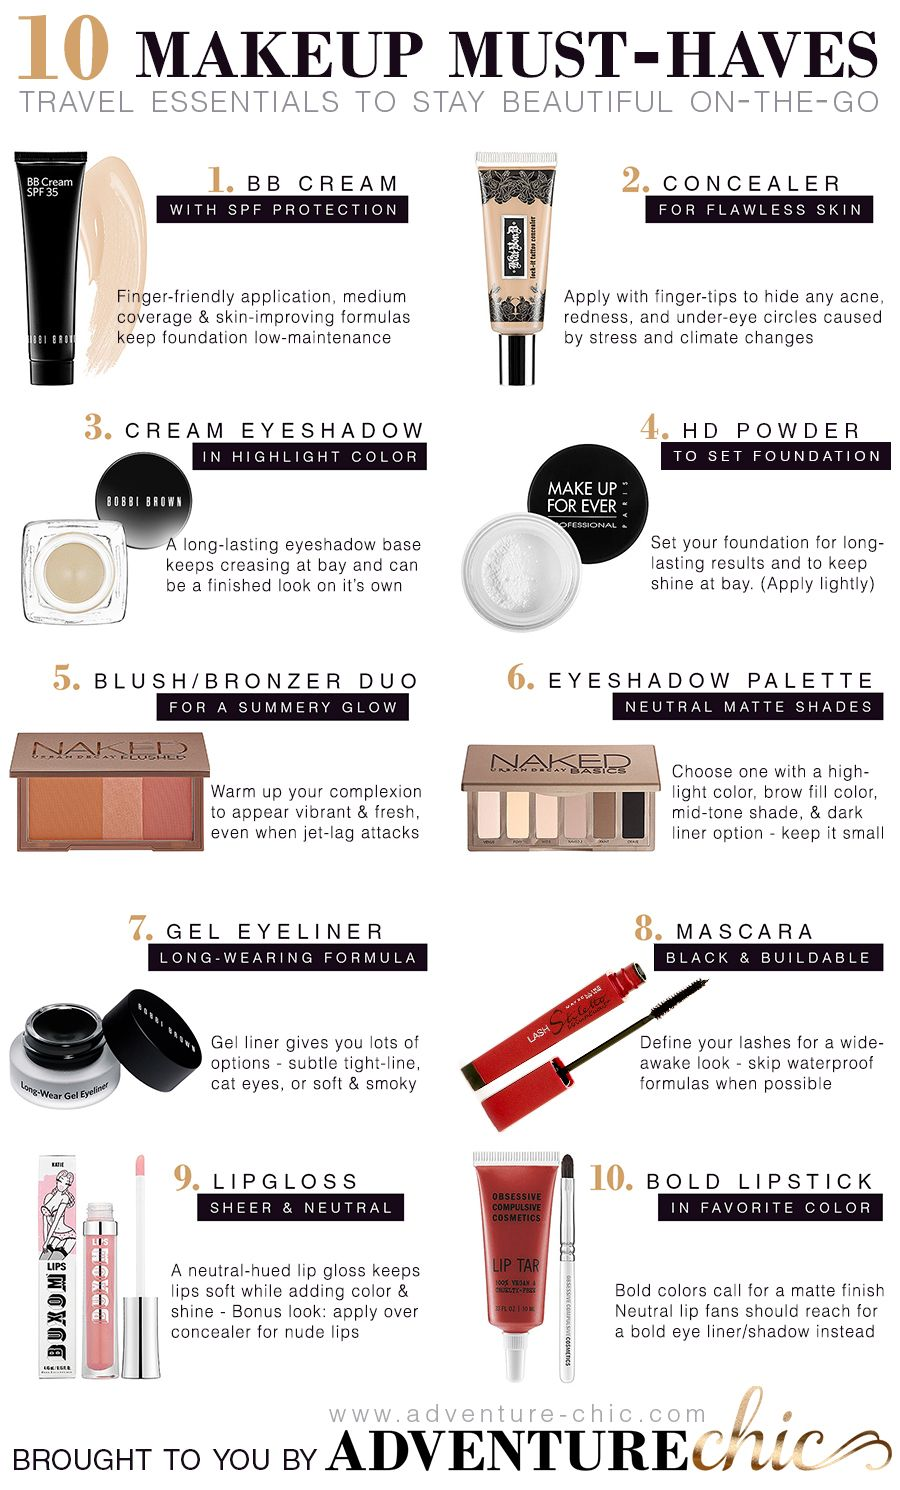 10 Makeup MustHaves for Travel this blog has tons of